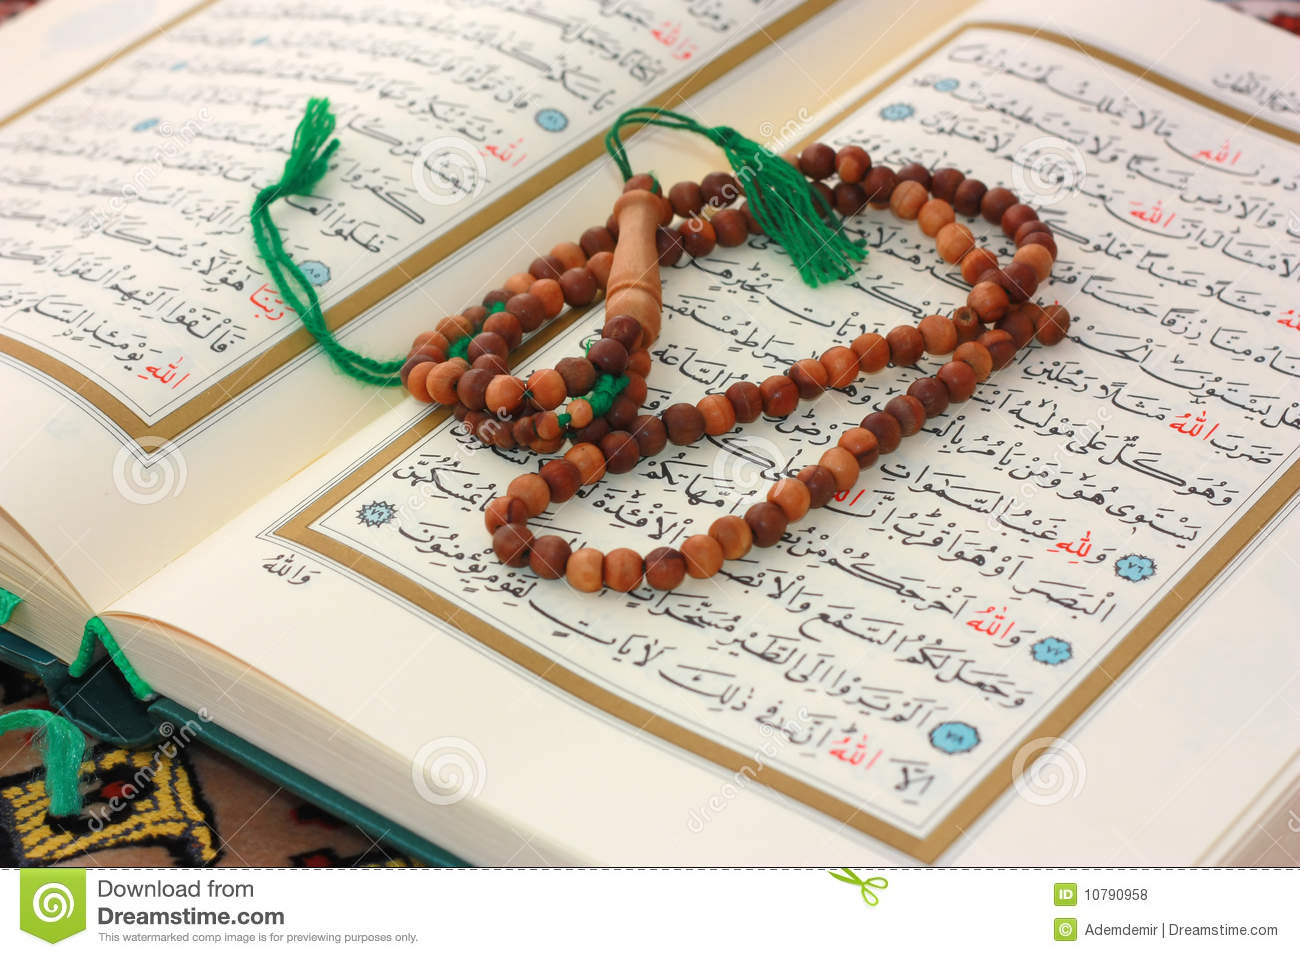 Citaten Quran Gratis : Holy quran with wooden rosary stock photo image